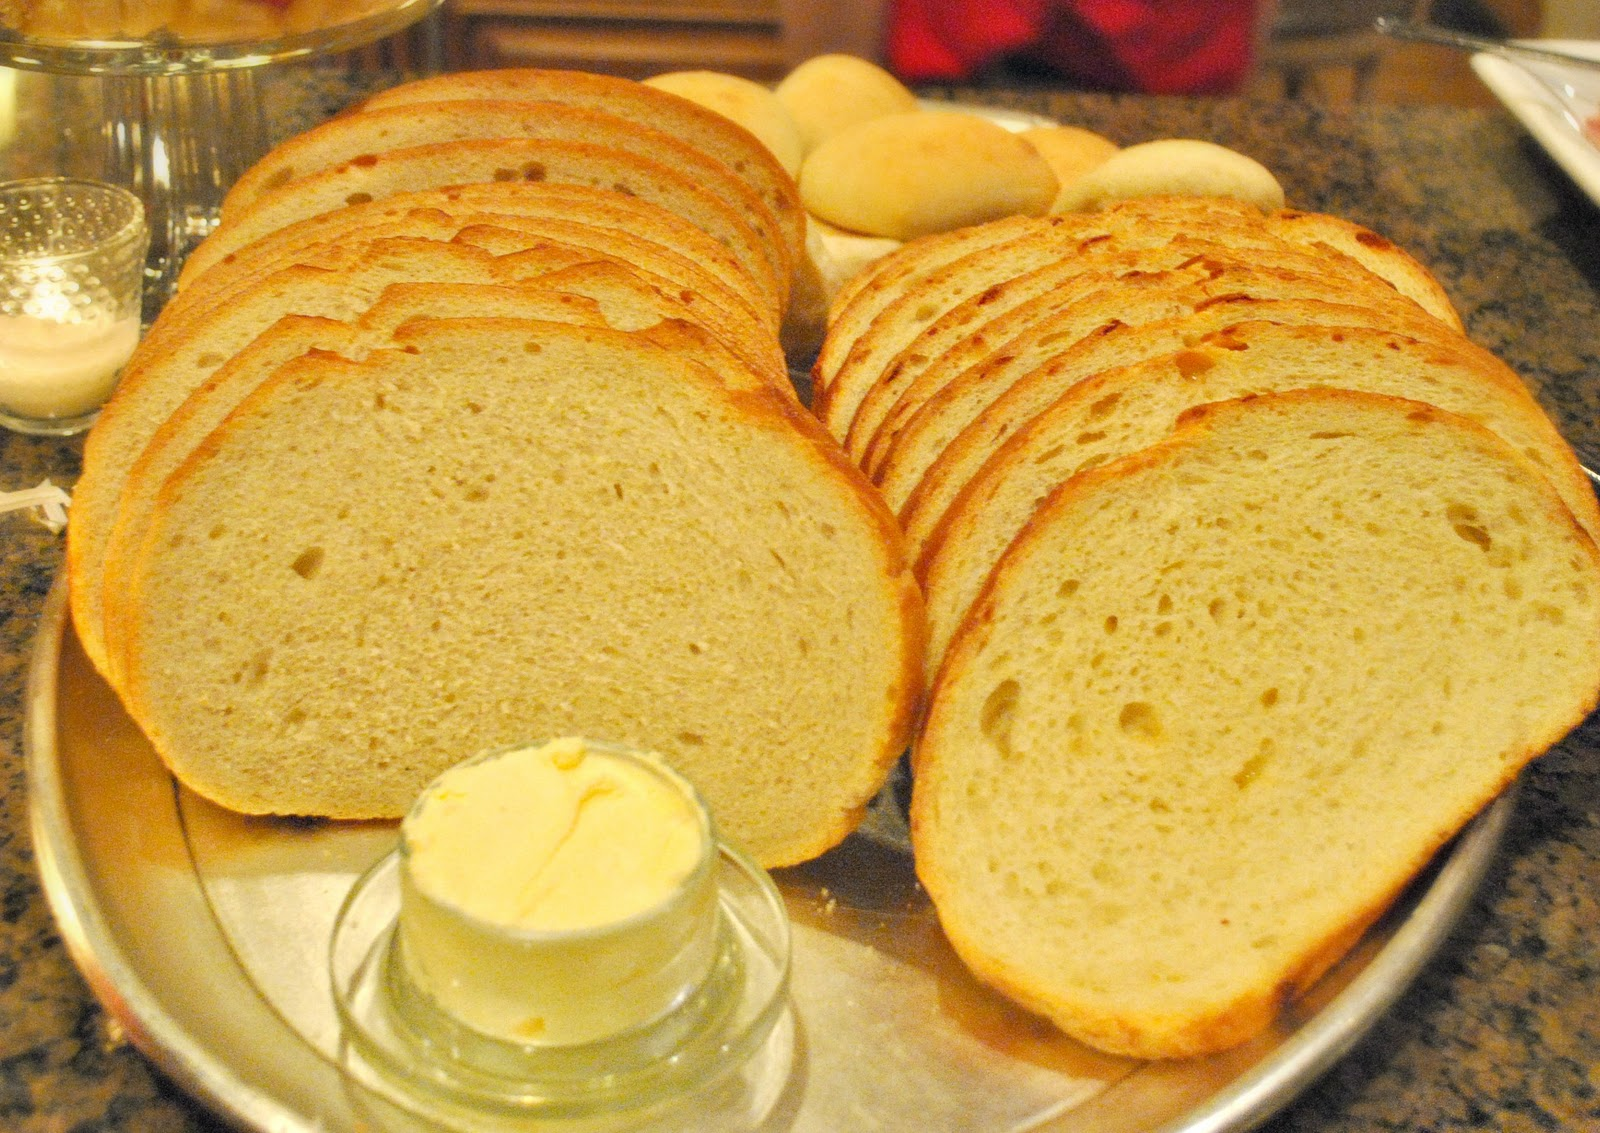 Panera Bread Restaurant Copycat Recipes: Three Cheese Bread